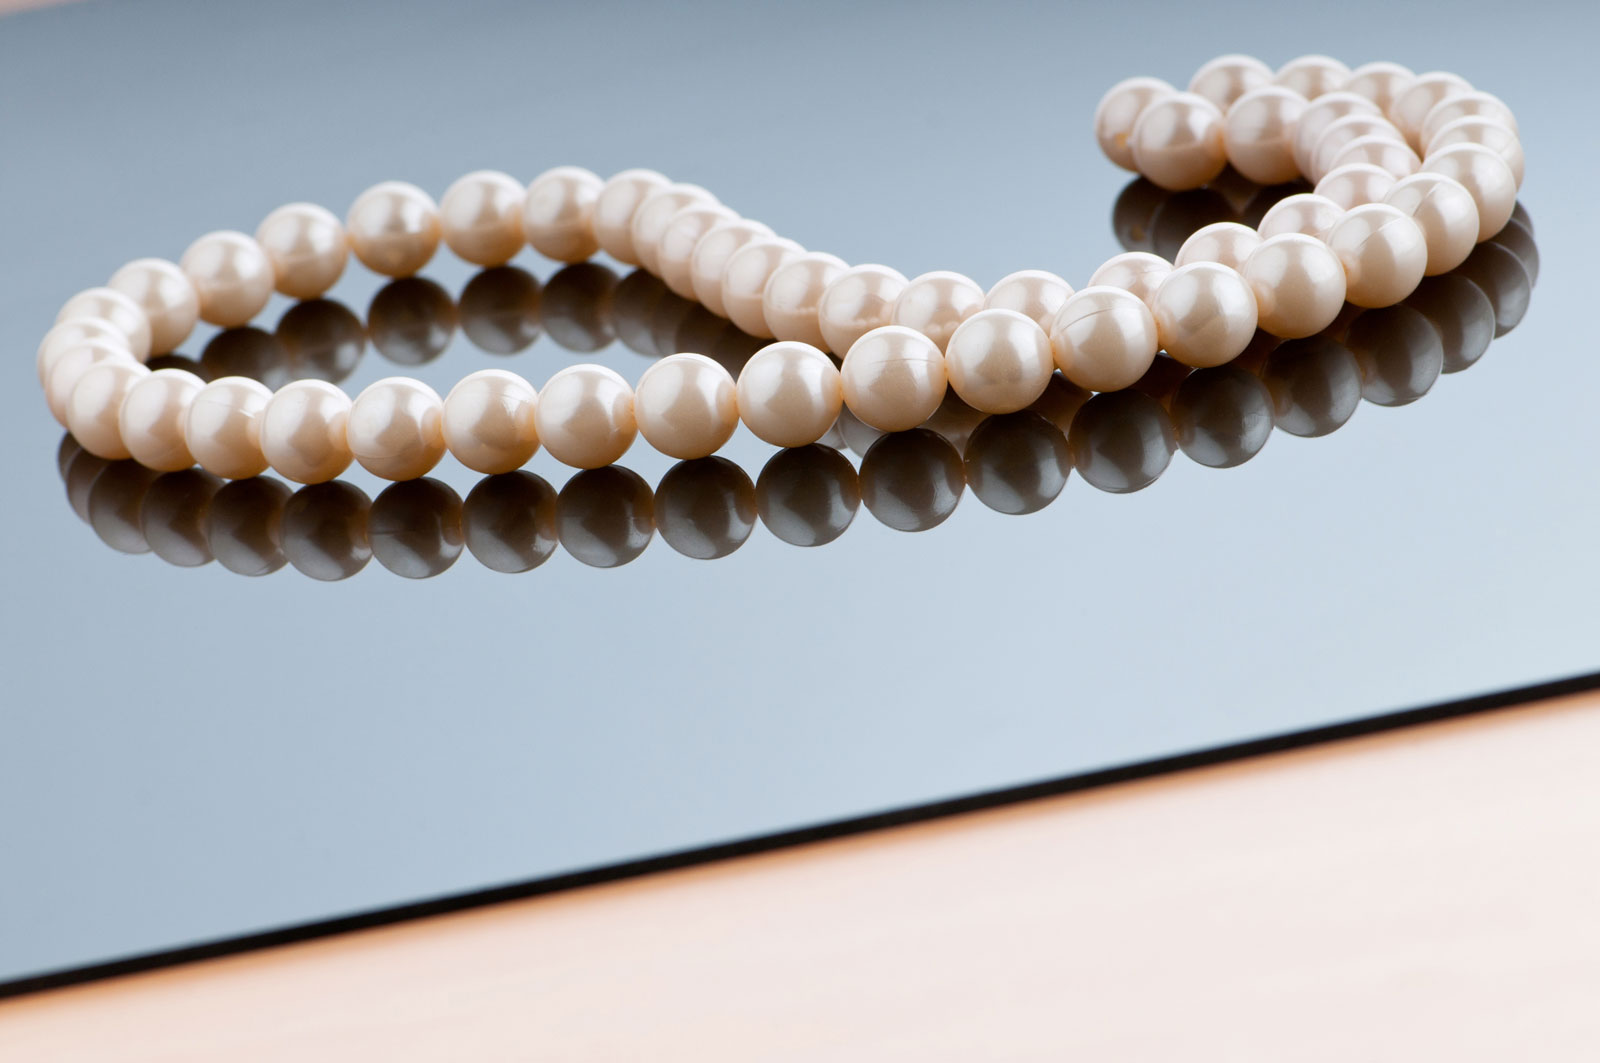 Pearl Necklace   6 Things To Look For From A Good Online Jewelry Store